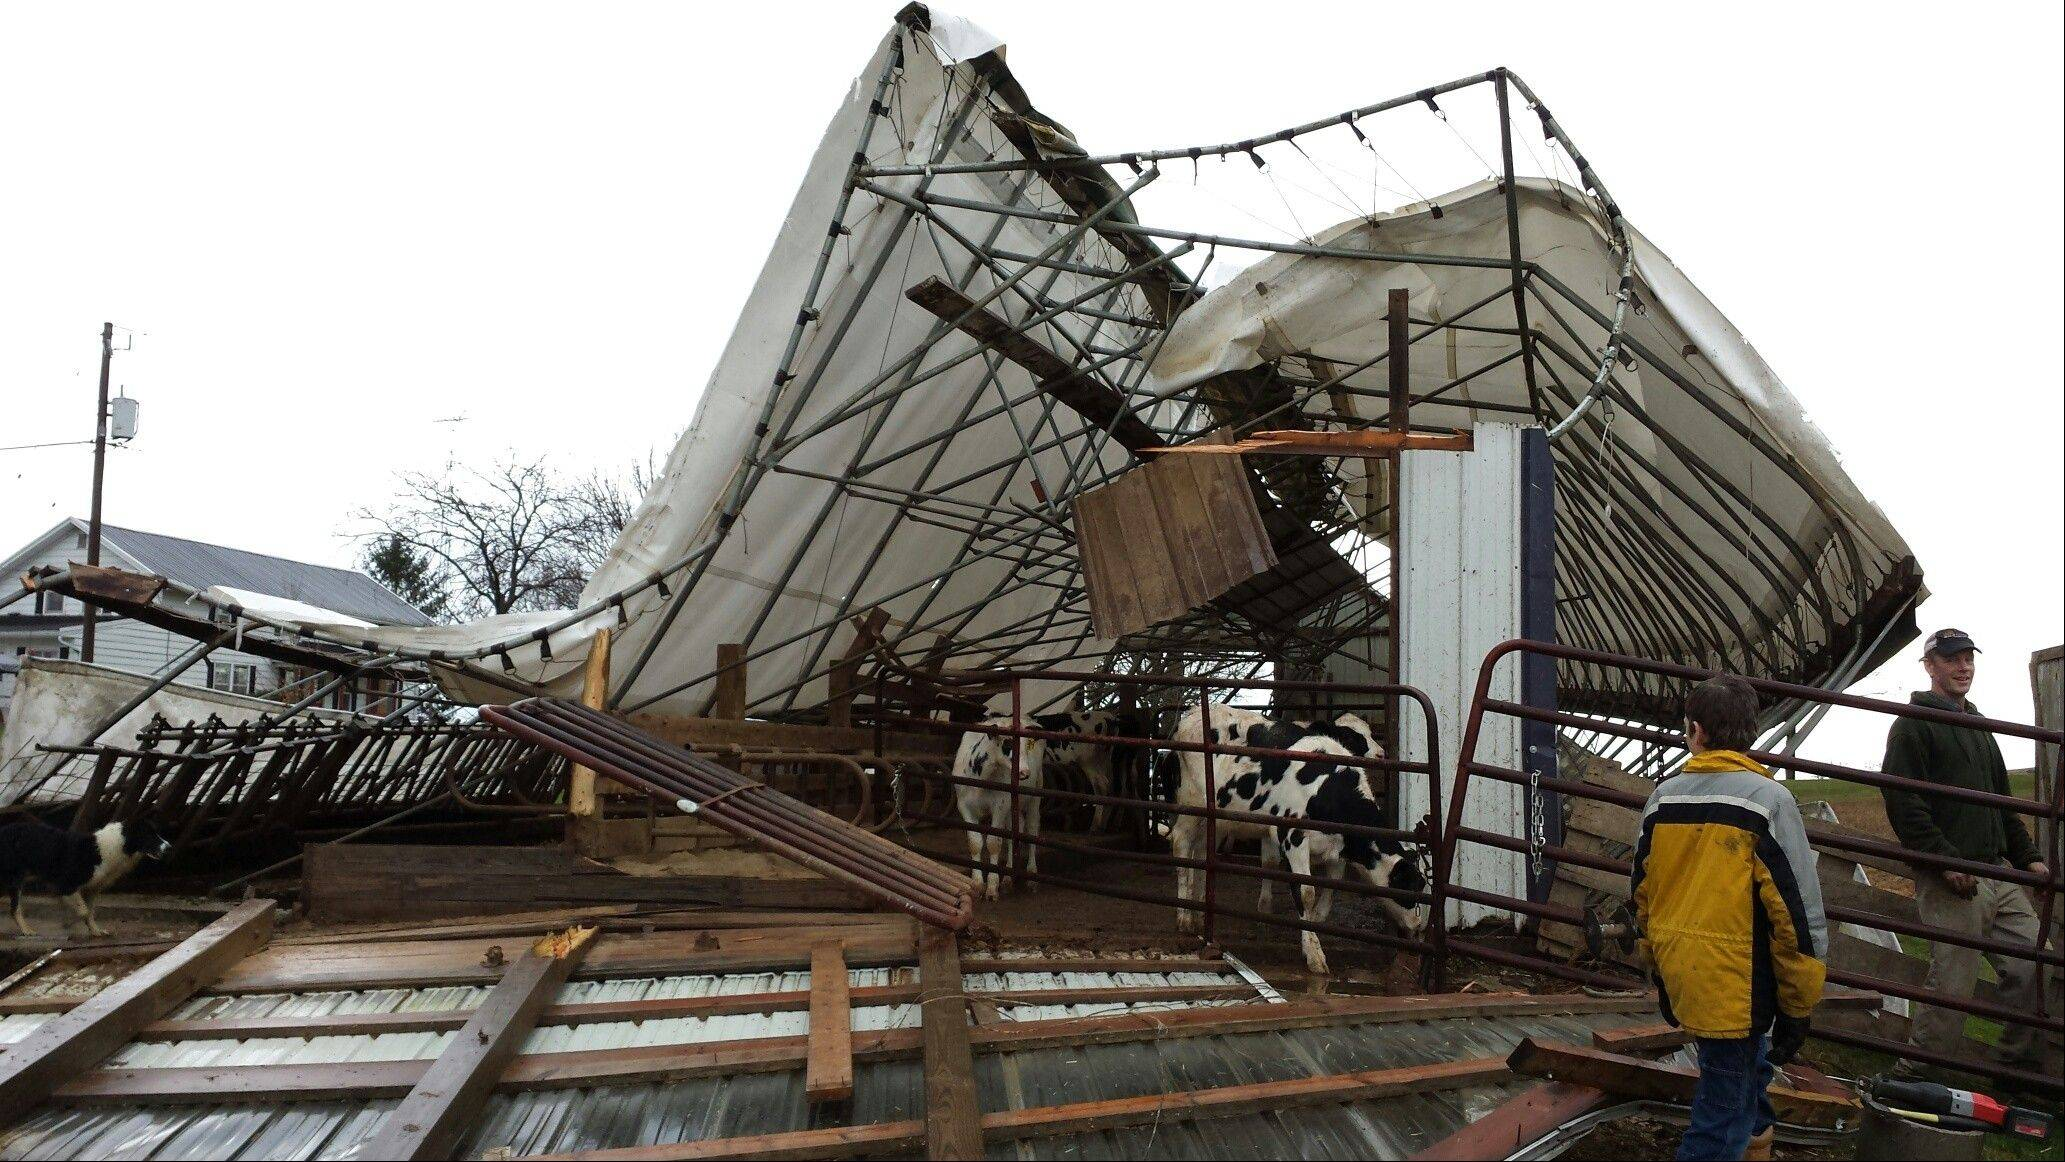 This photo provided by Dodge County Emergency Management shows cattle shed on a family farm in the Town of Hustisford was damaged Sunday, Nov. 17, 2013 when severe weather moved through the area. Dodge County Emergency Management Director Joseph Meagher says no cattle were injured.